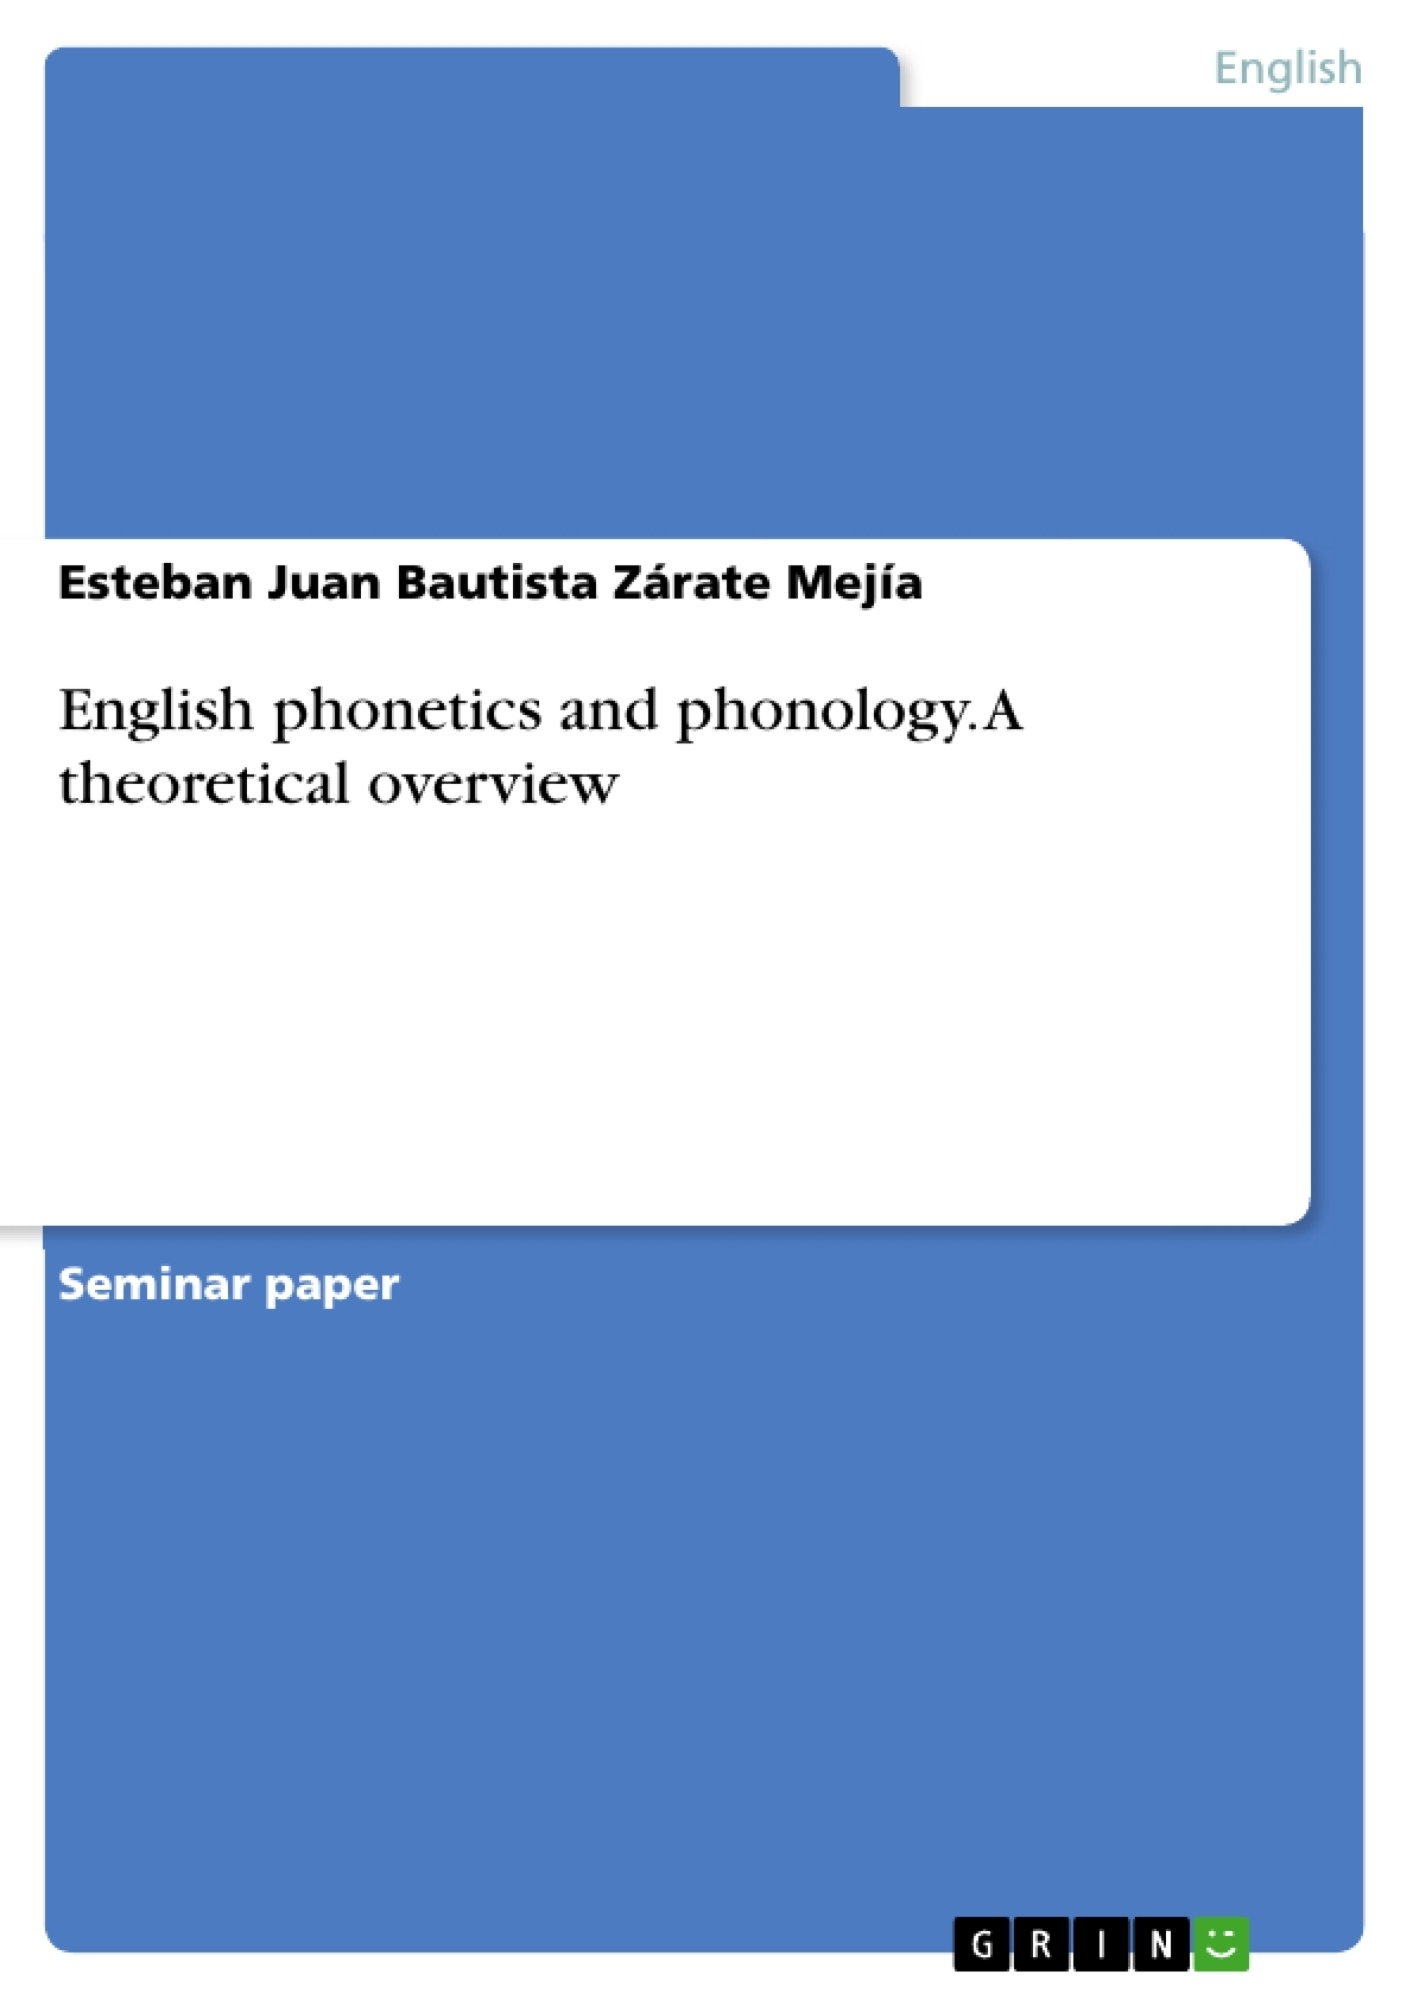 GRIN - English phonetics and phonology  A theoretical overview